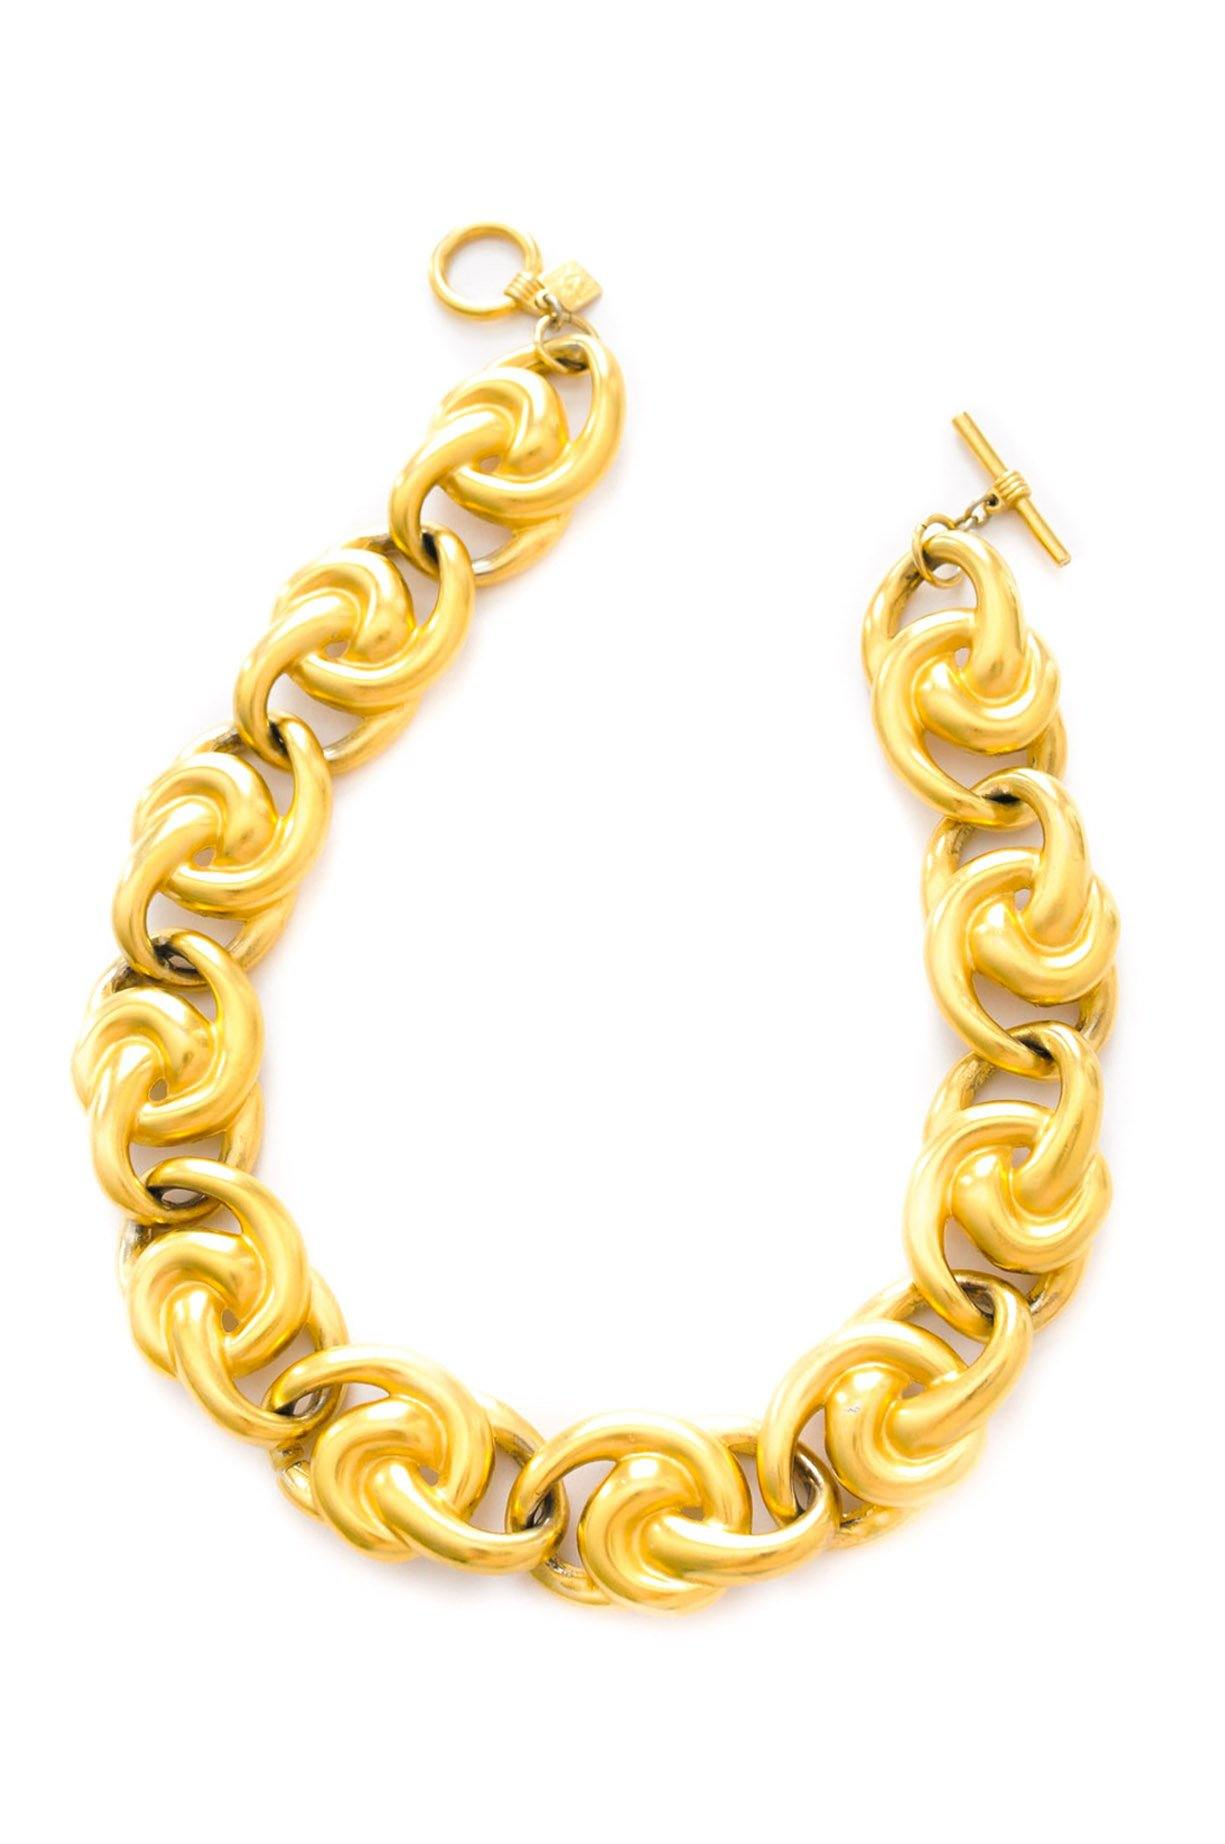 Vintage Anne Klein statement knot necklace from Sweet & Spark.